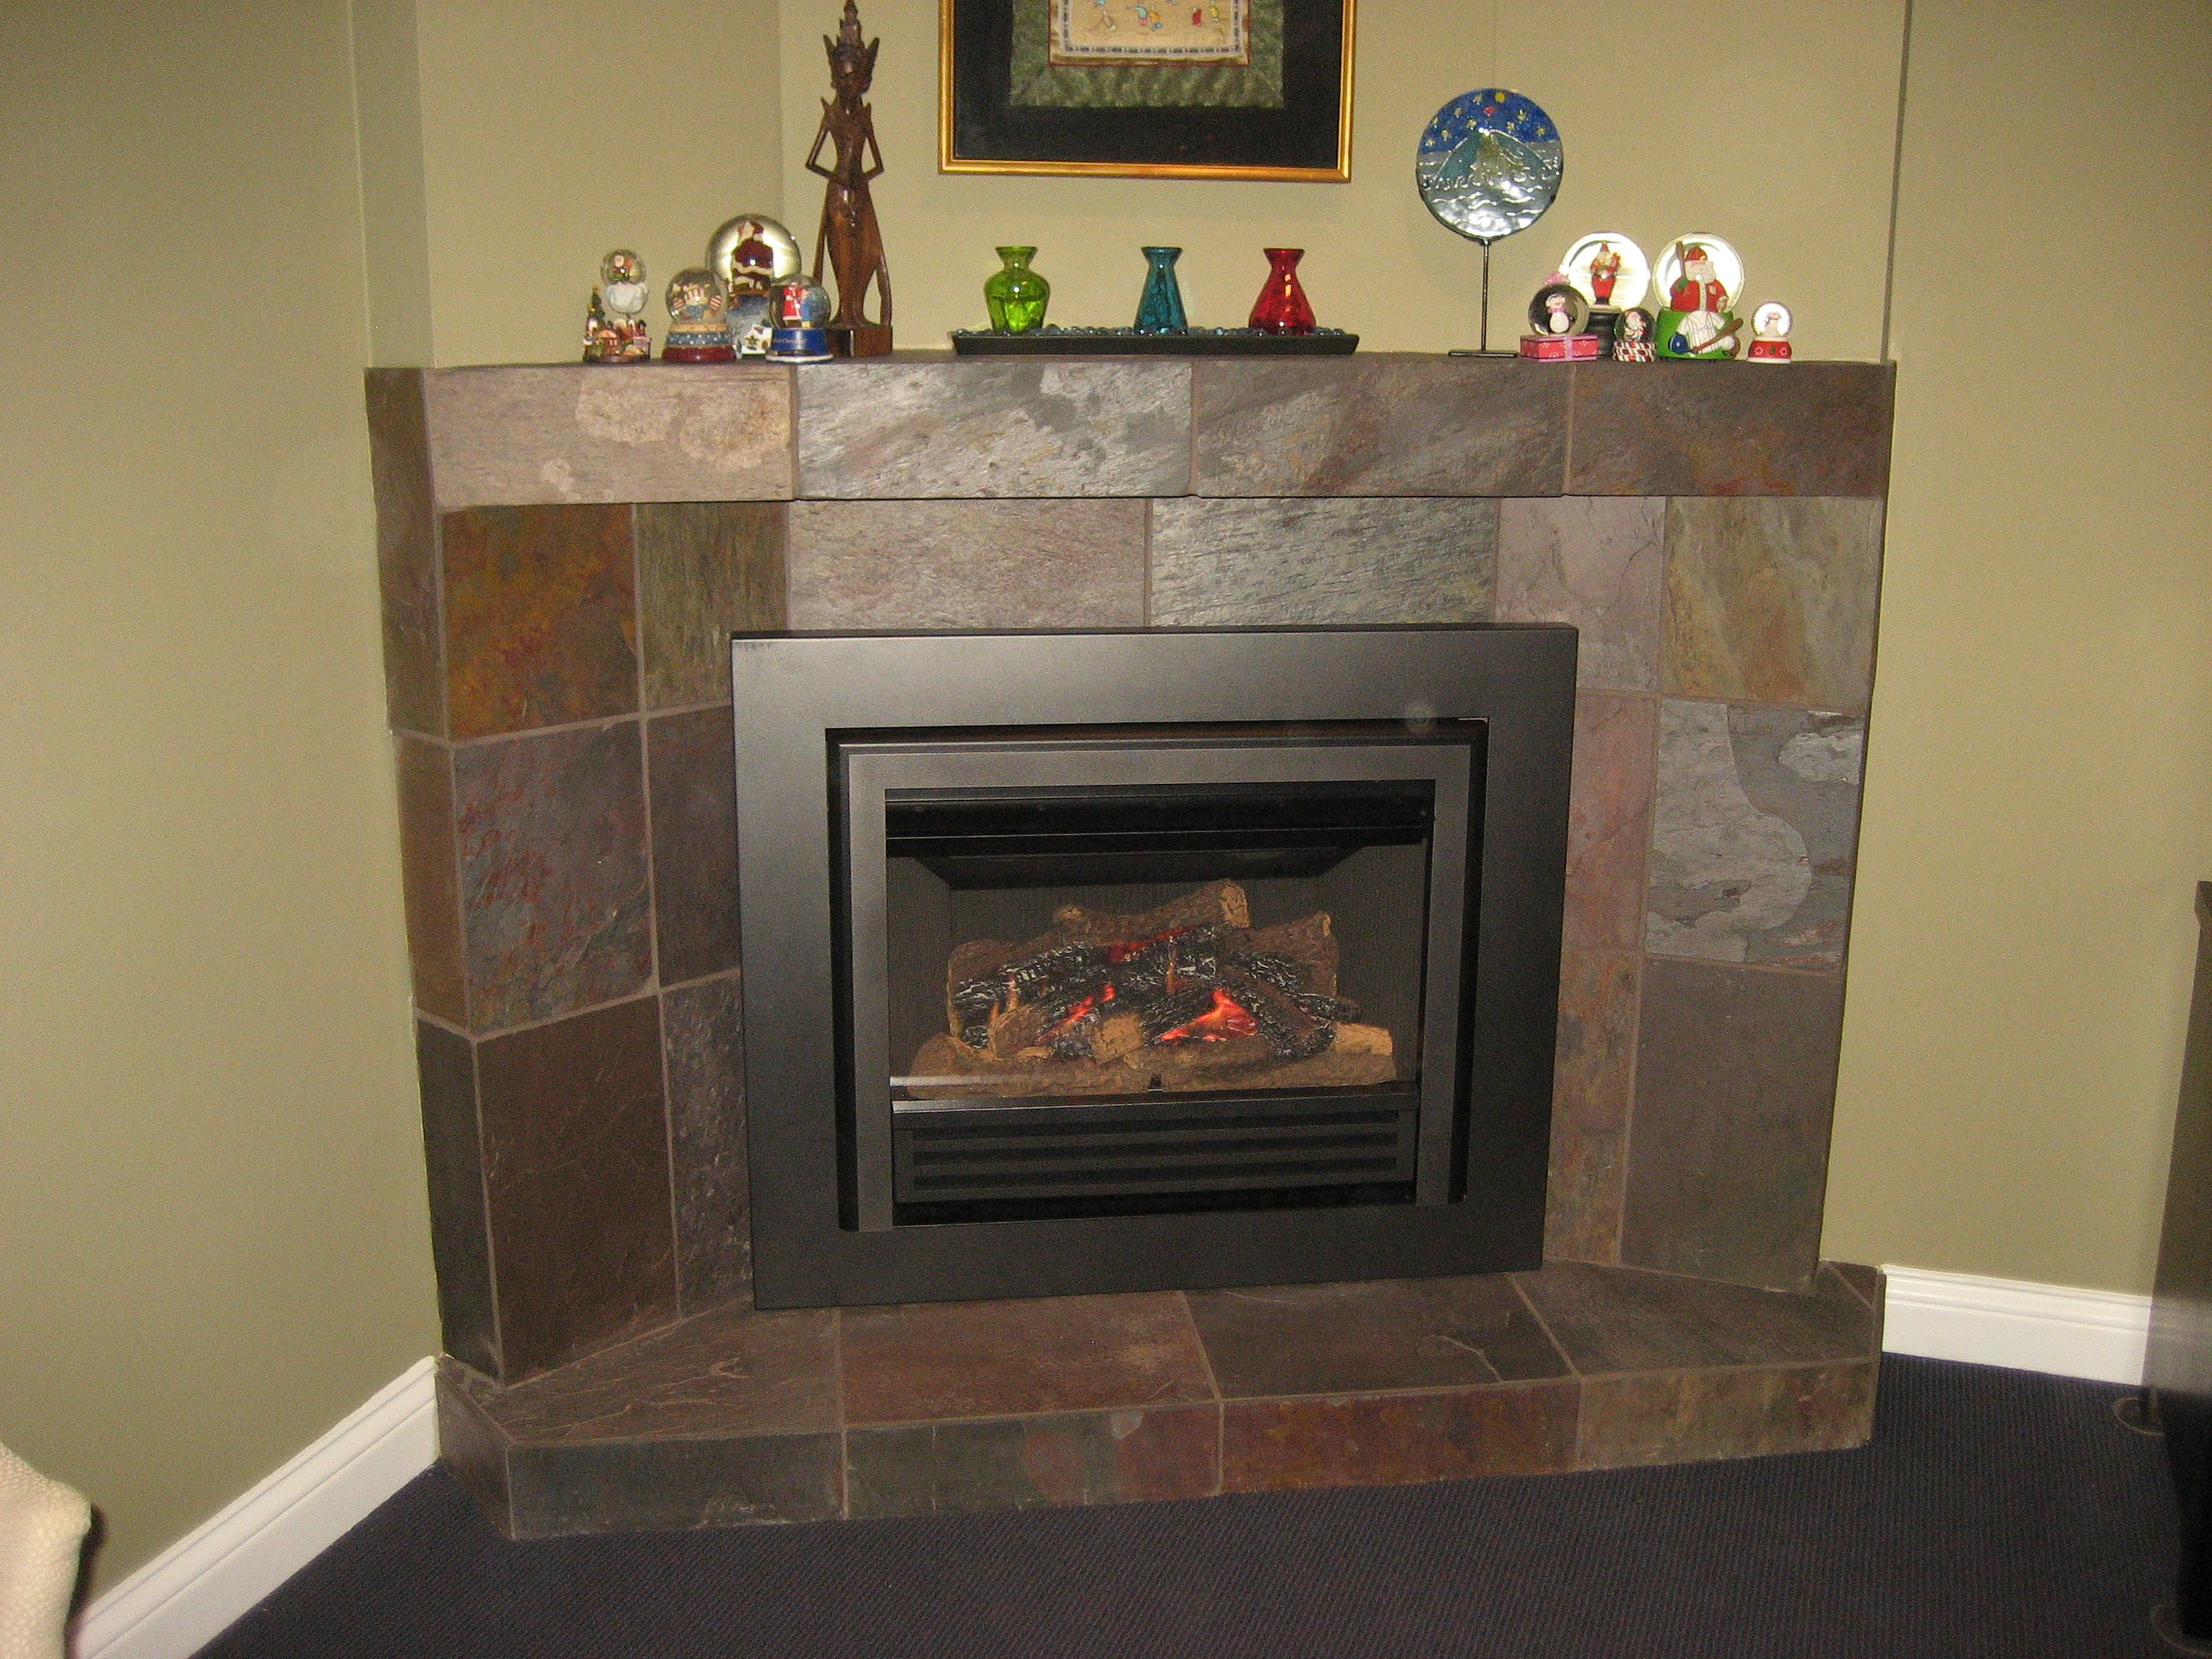 valor legend g3 739jln gas fireplace insert installed in corner